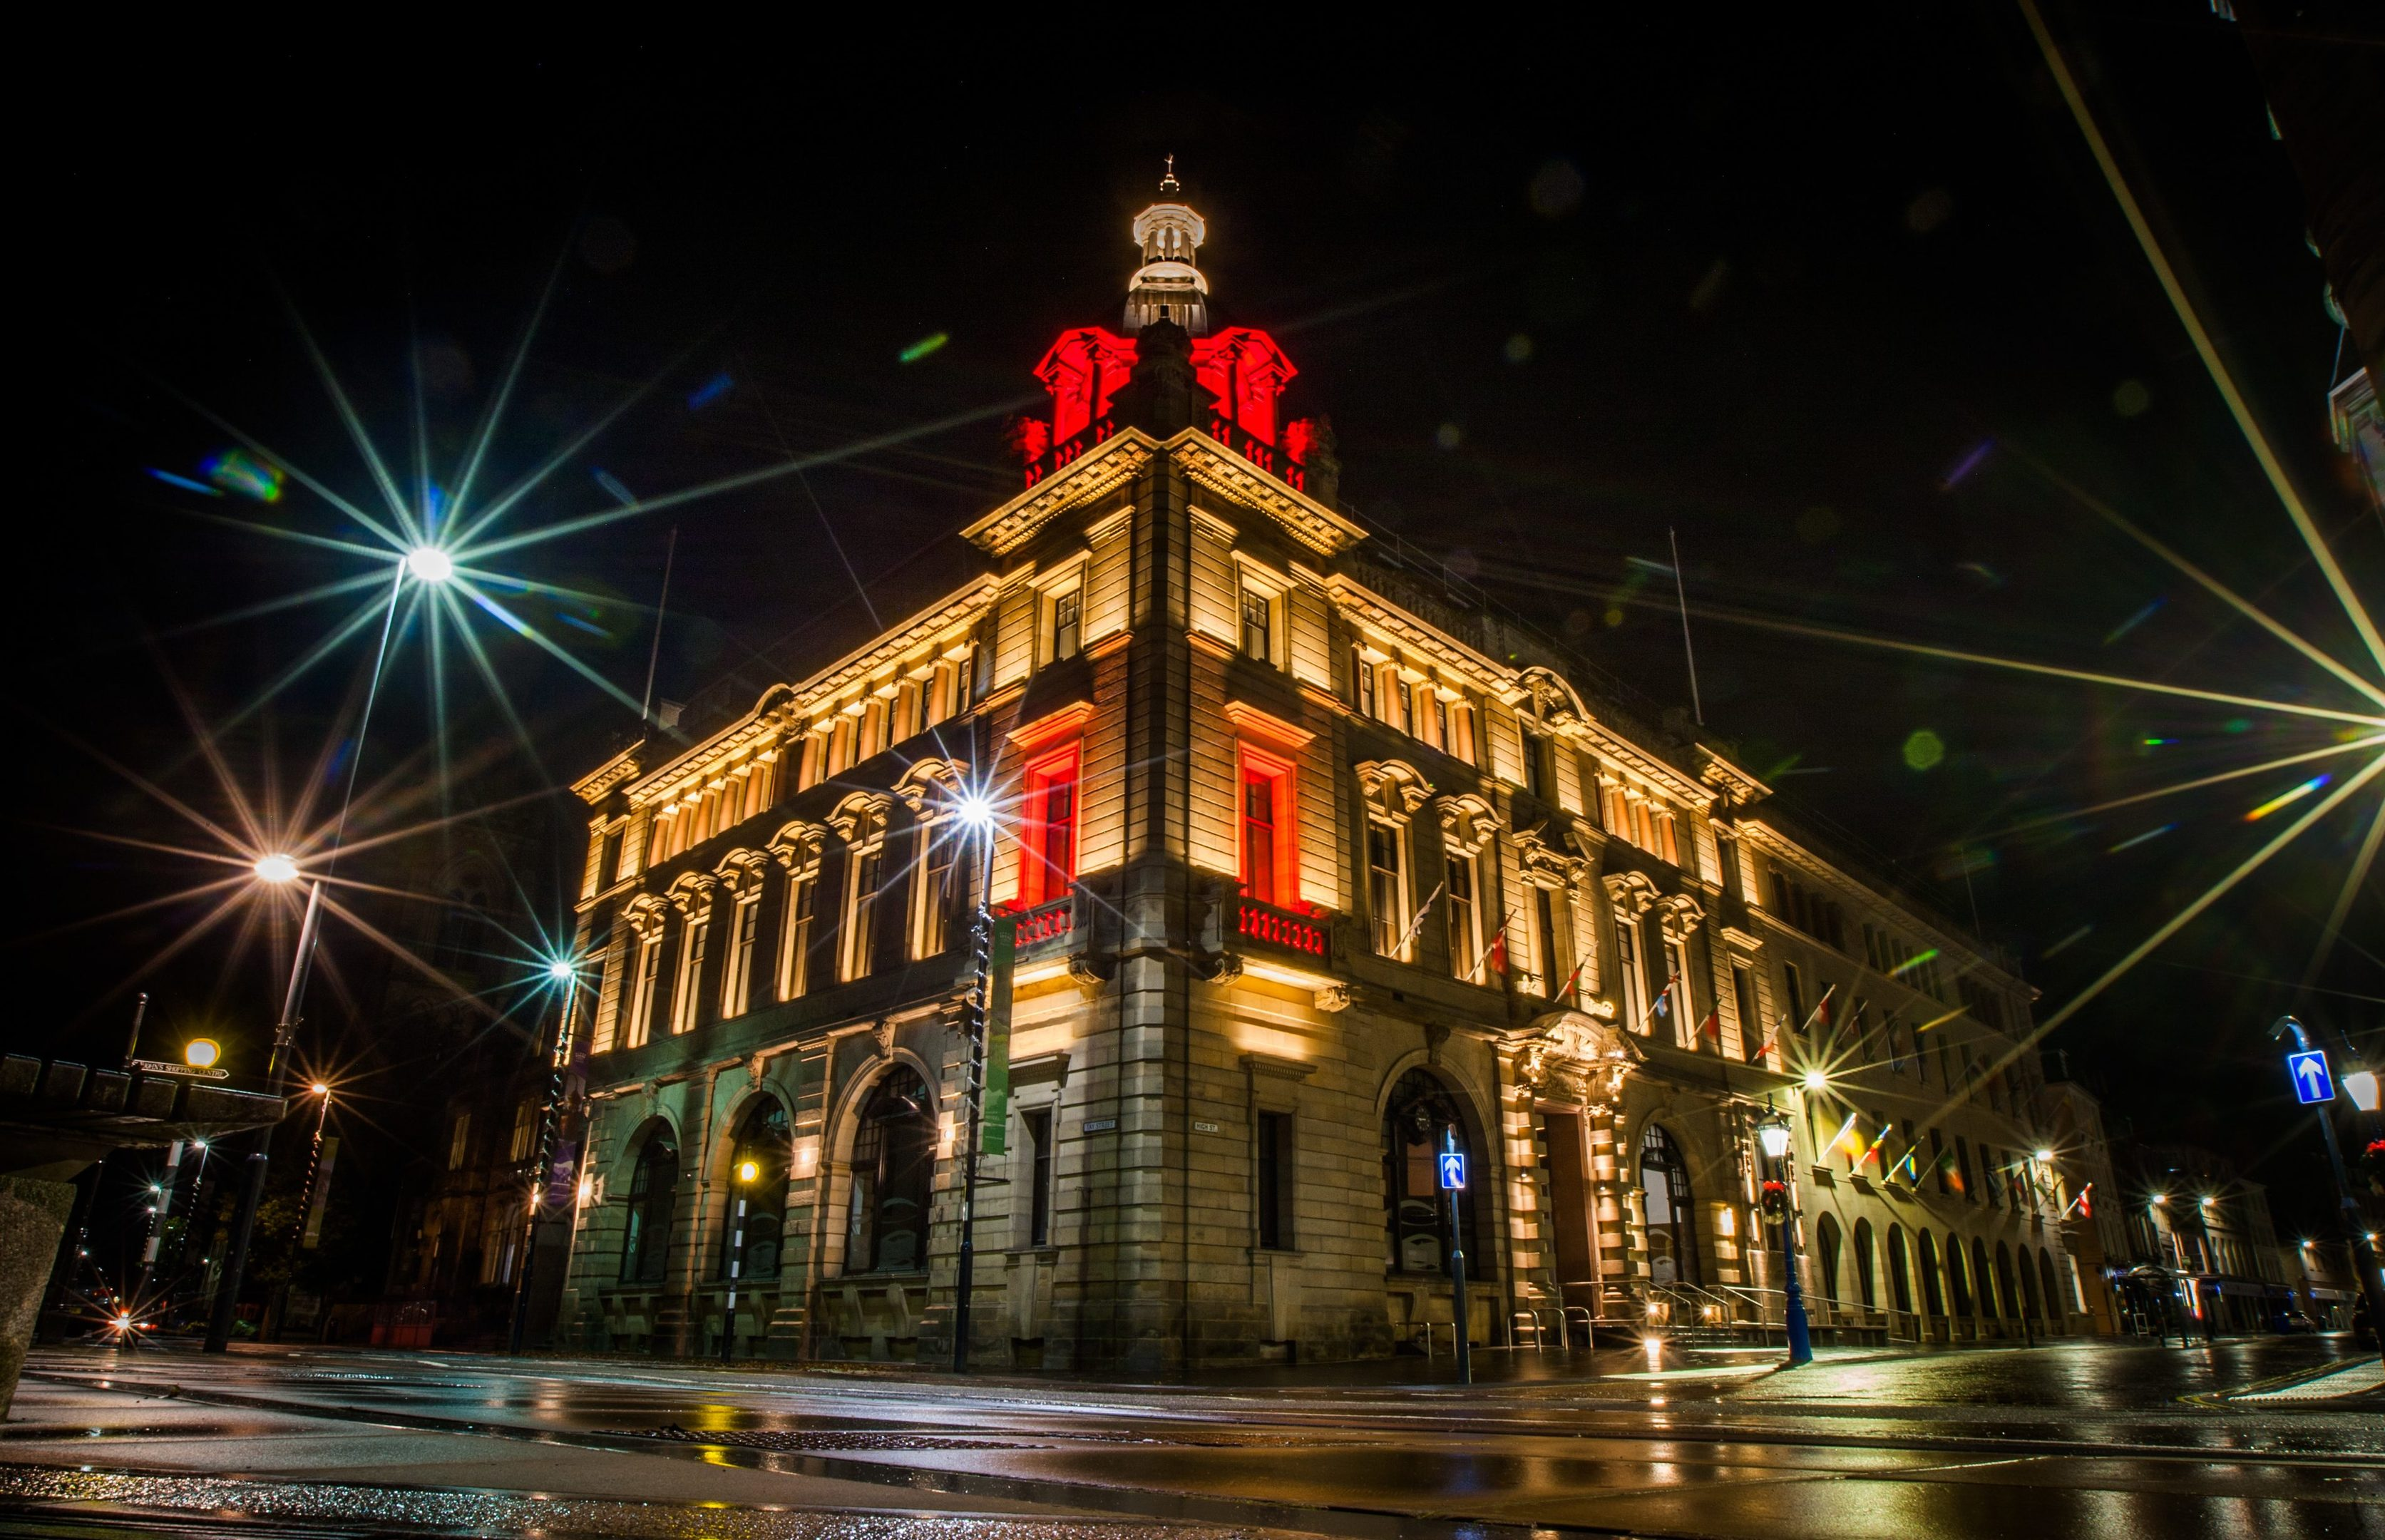 Perth and Kinross Council High Street headquarters lit up.